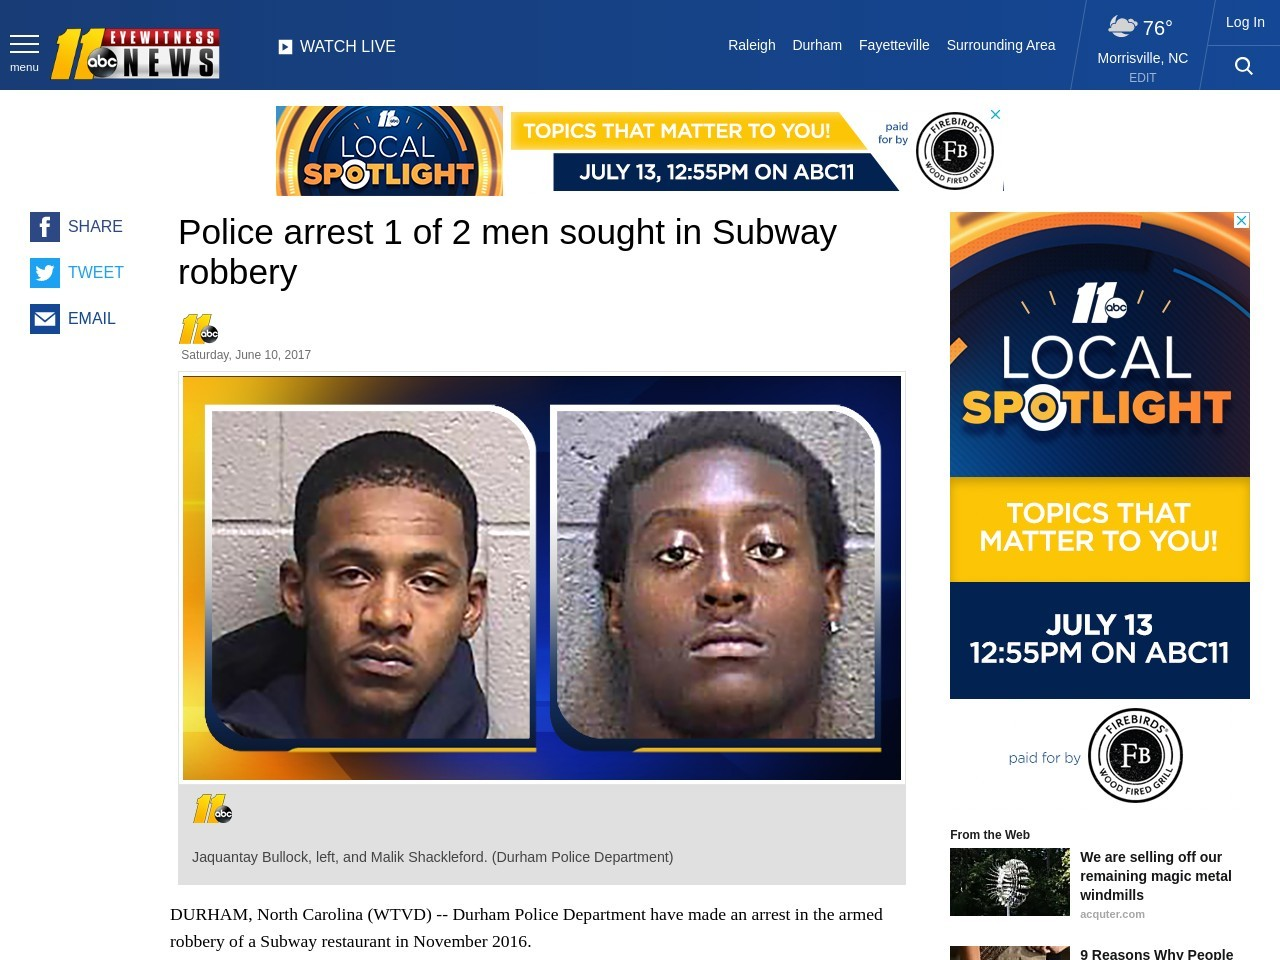 Police arrest 1 of 2 men sought in Subway robbery